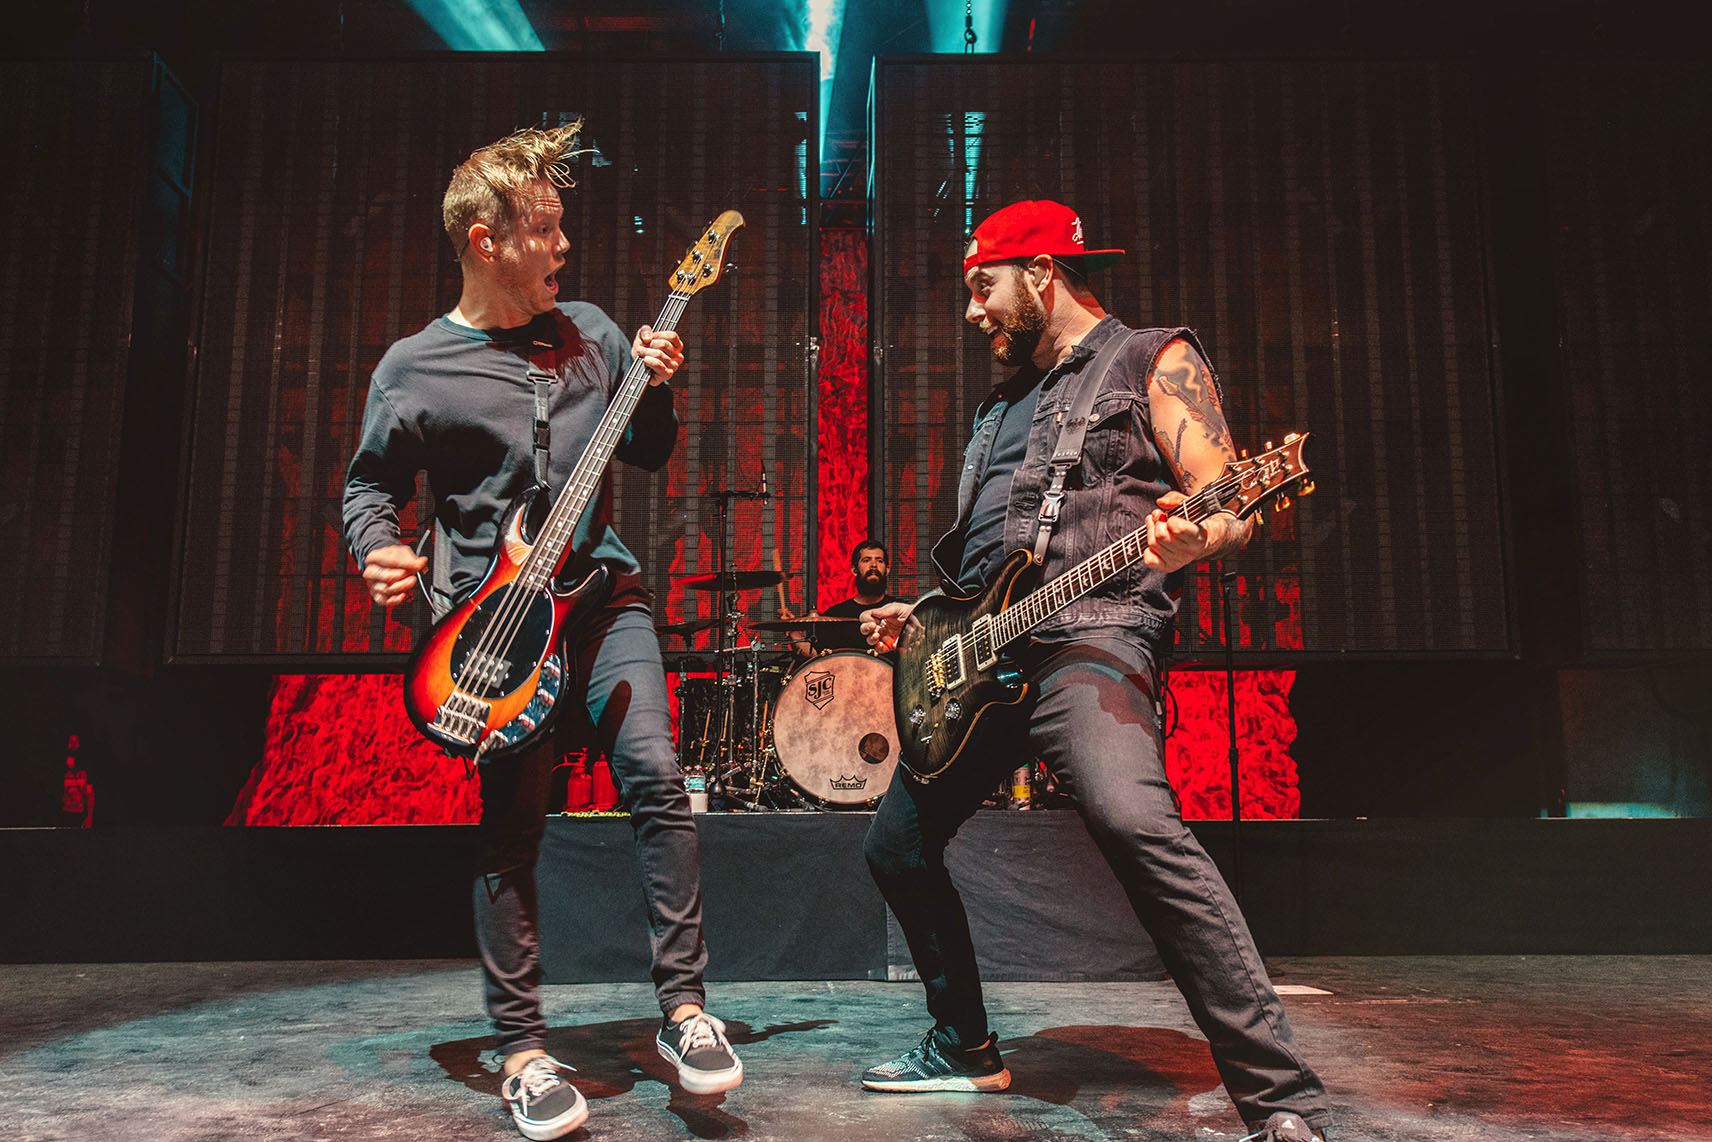 a day to remember ADTR josh woodard kevin skaff band concert rock photo photography image